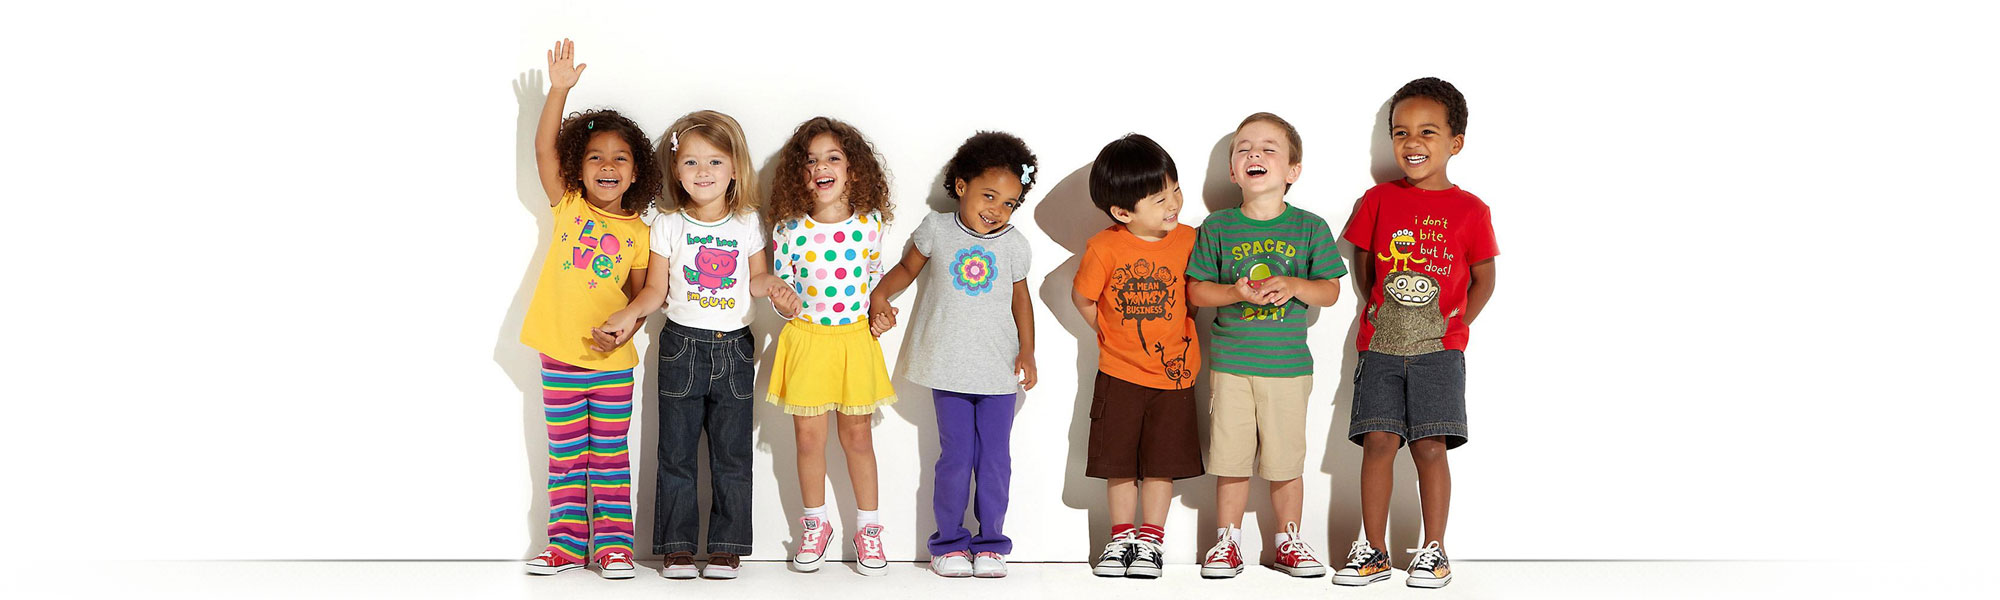 Carolyns Kids Talent Agency - Toronto